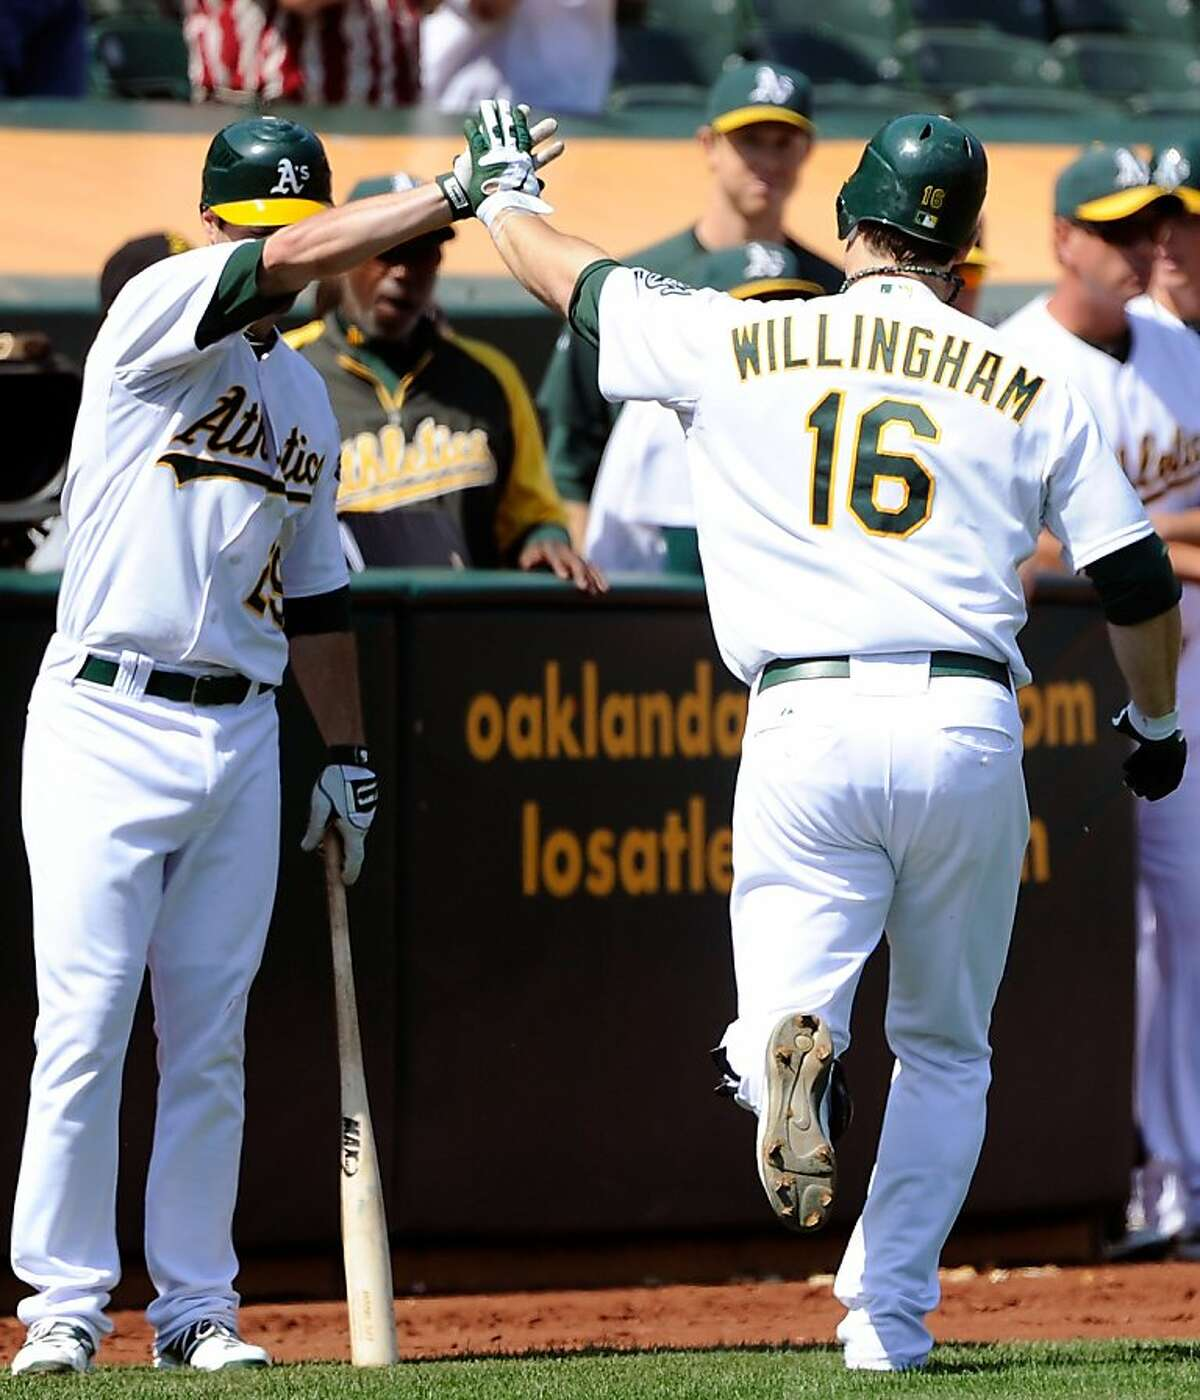 OAKLAND, CA - SEPTEMBER 14: Josh Willingham #16 of the Oakland Athletics celebrates with Scott Sizemore #29 after hitting a home run against the Los Angeles Angels of Anaheim in third Inning during an MLB baseball game at O.co Coliseum on September 14, 2011 in Oakland, California. (Photo by Thearon W. Henderson/Getty Images)